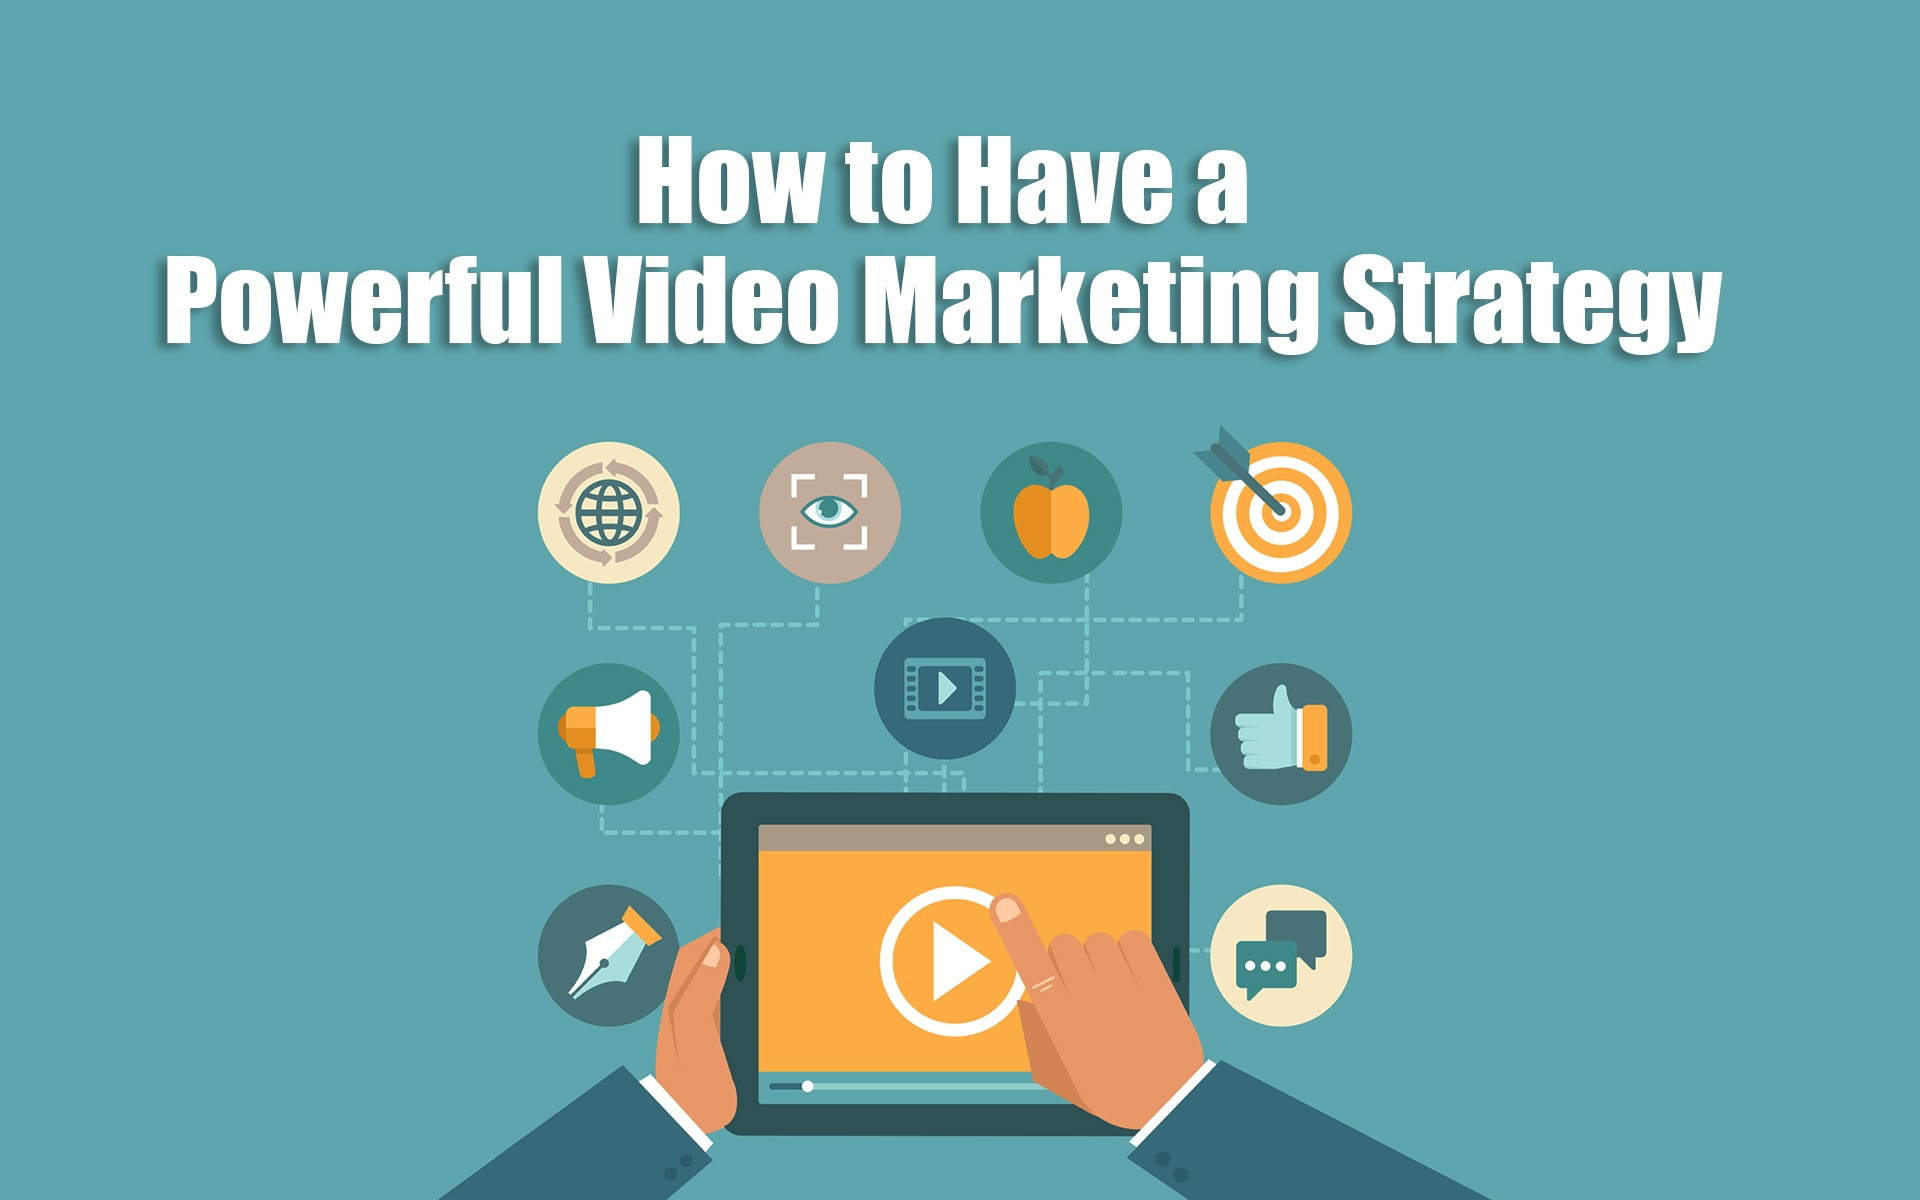 How to Have a Powerful Video Marketing Strategy